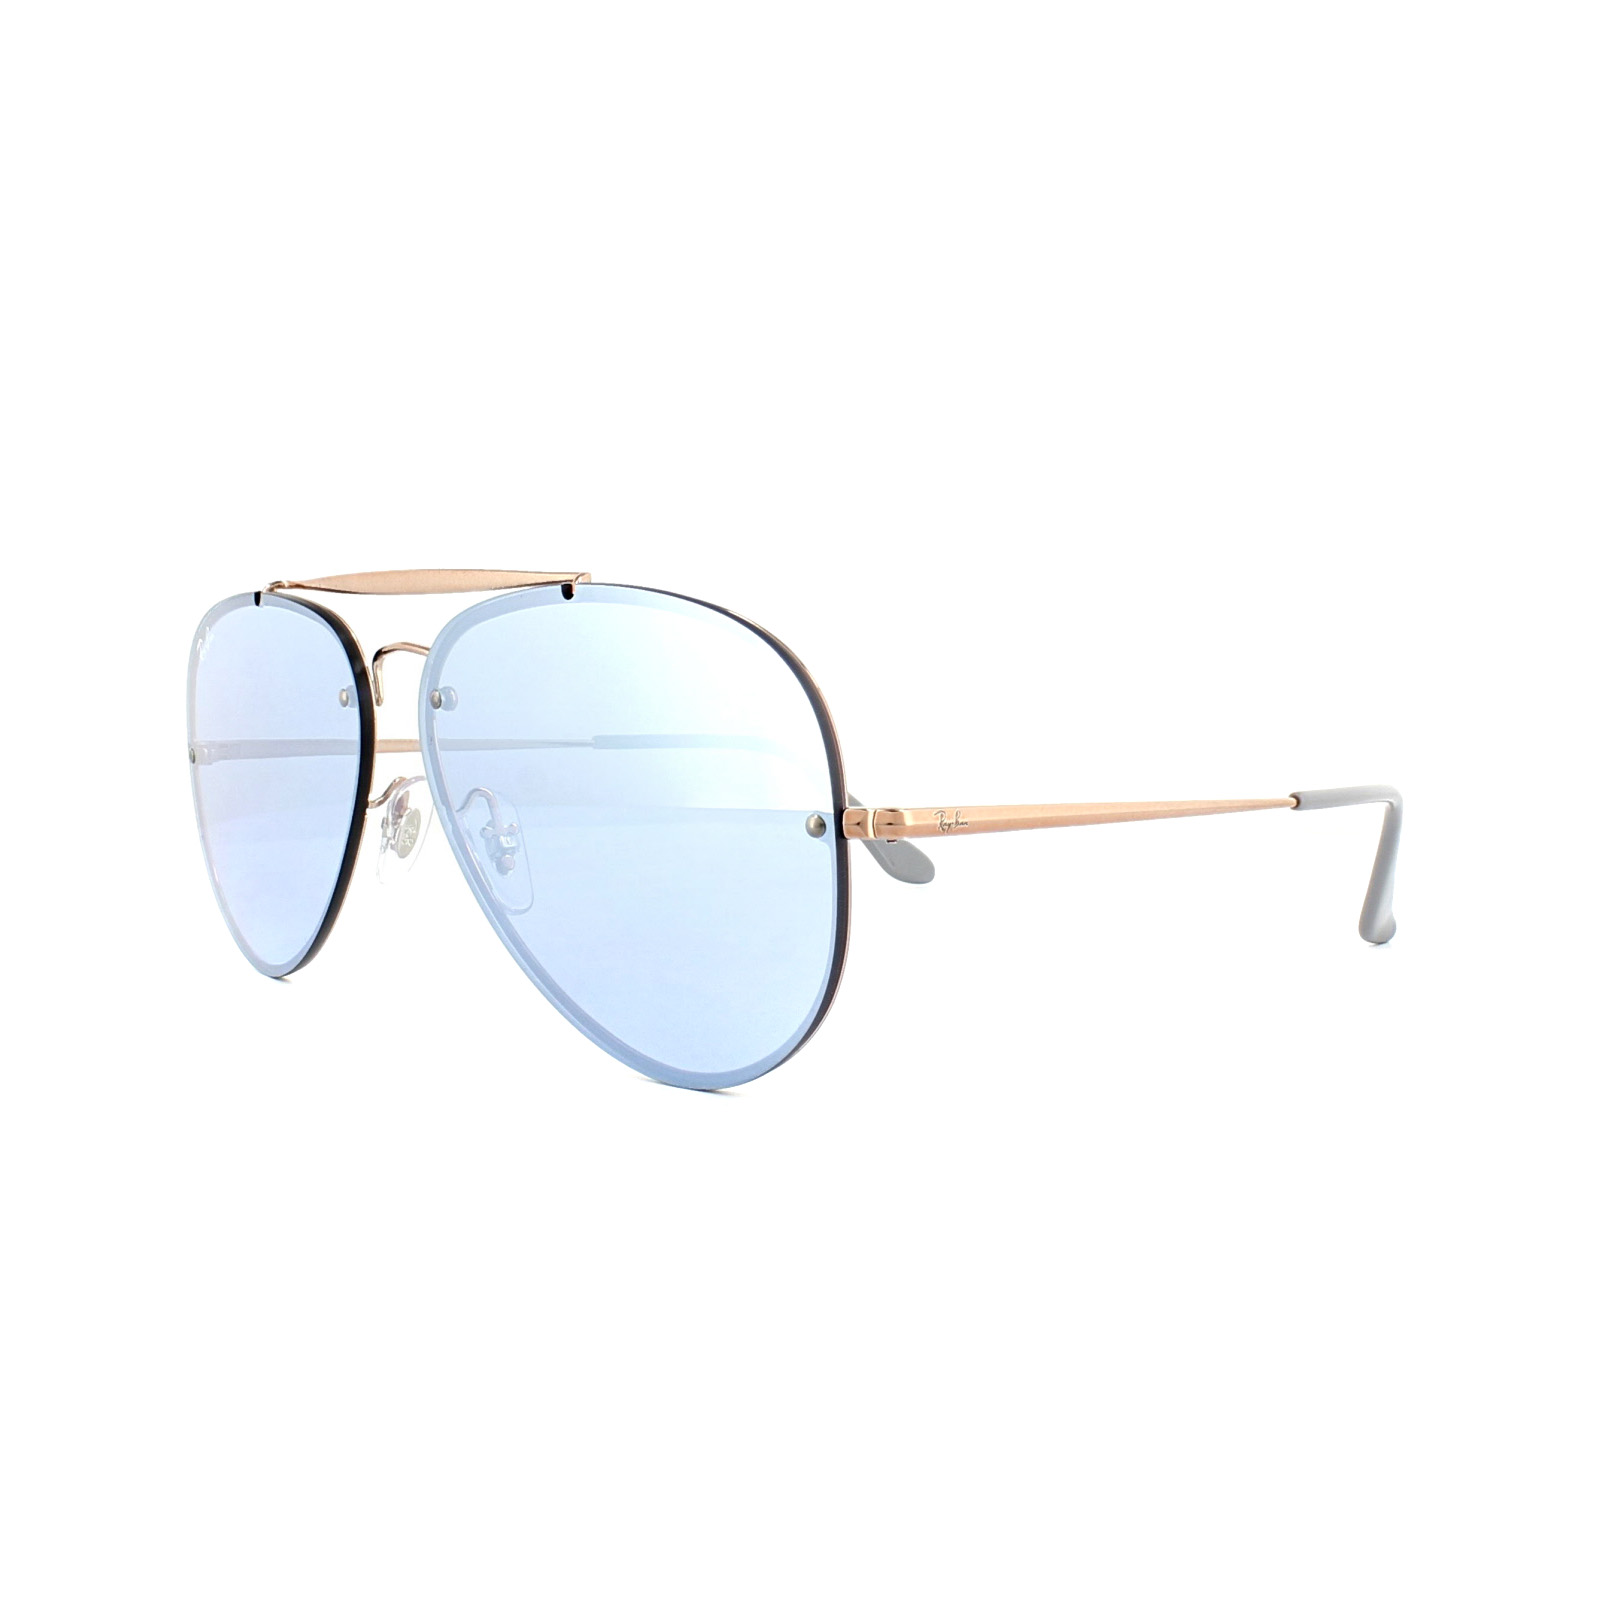 706ad03ab4 Sentinel Ray-Ban Sunglasses Blaze Aviator 3584N 90531U Bronze Copper Violet  Mirror